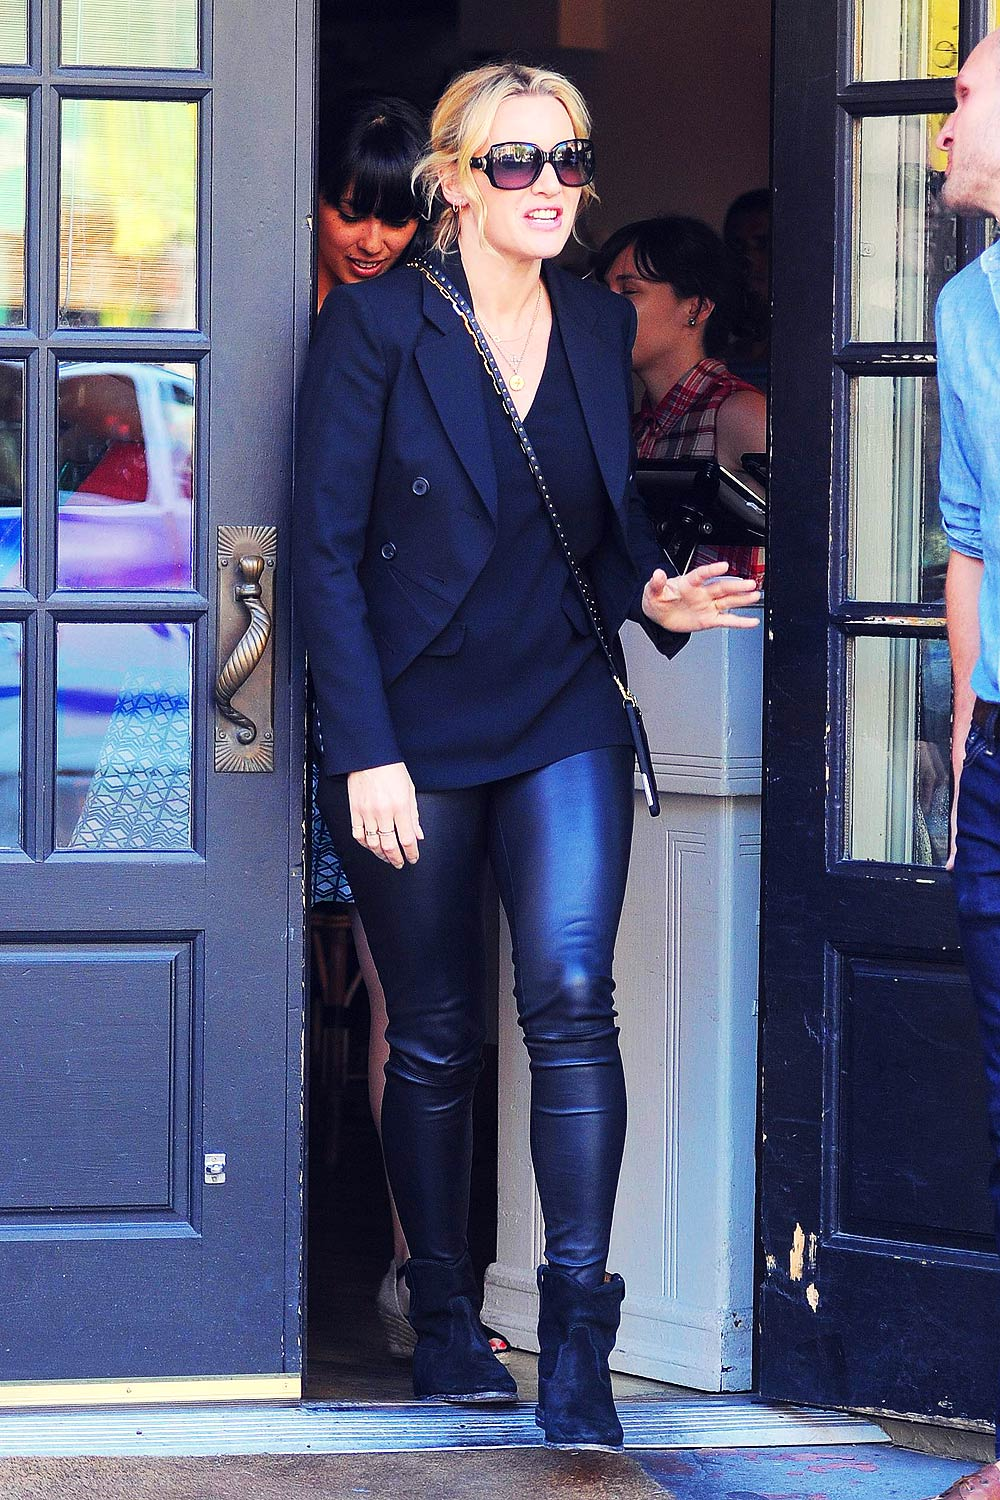 Kate Winslet gets lunch at Cafe Cluny